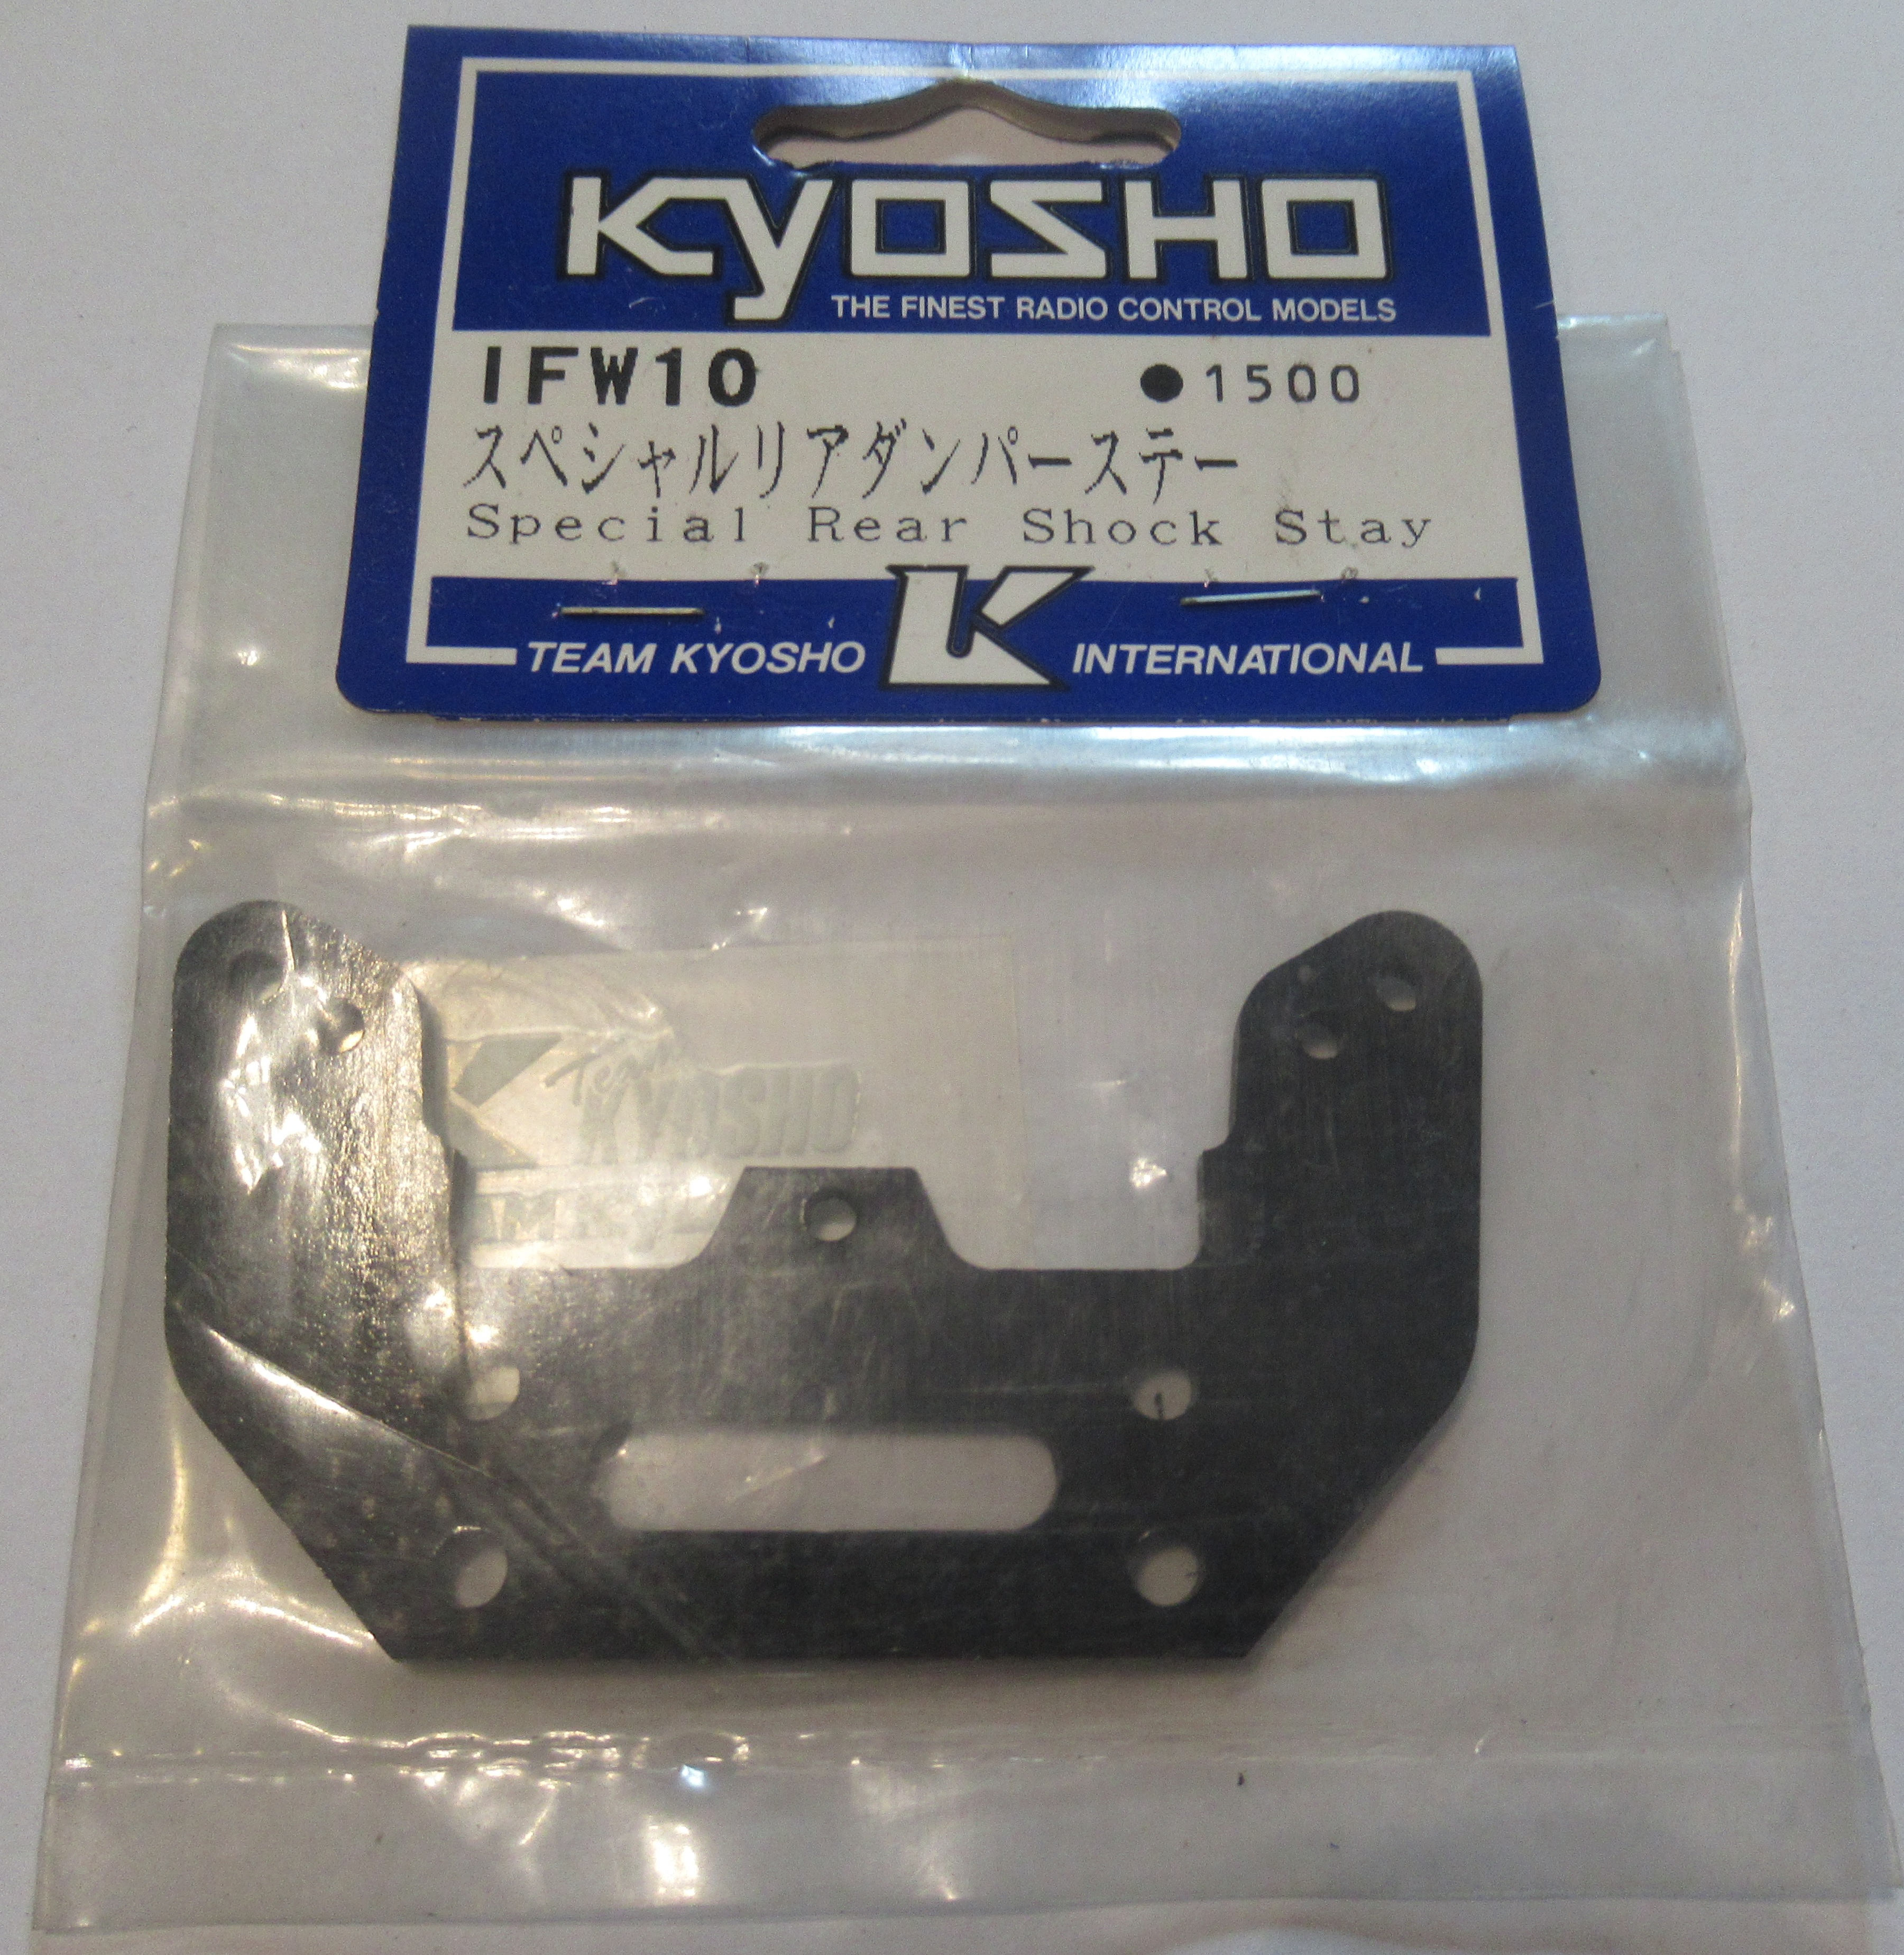 Kyosho IFW10 Special Rear Shock Stay